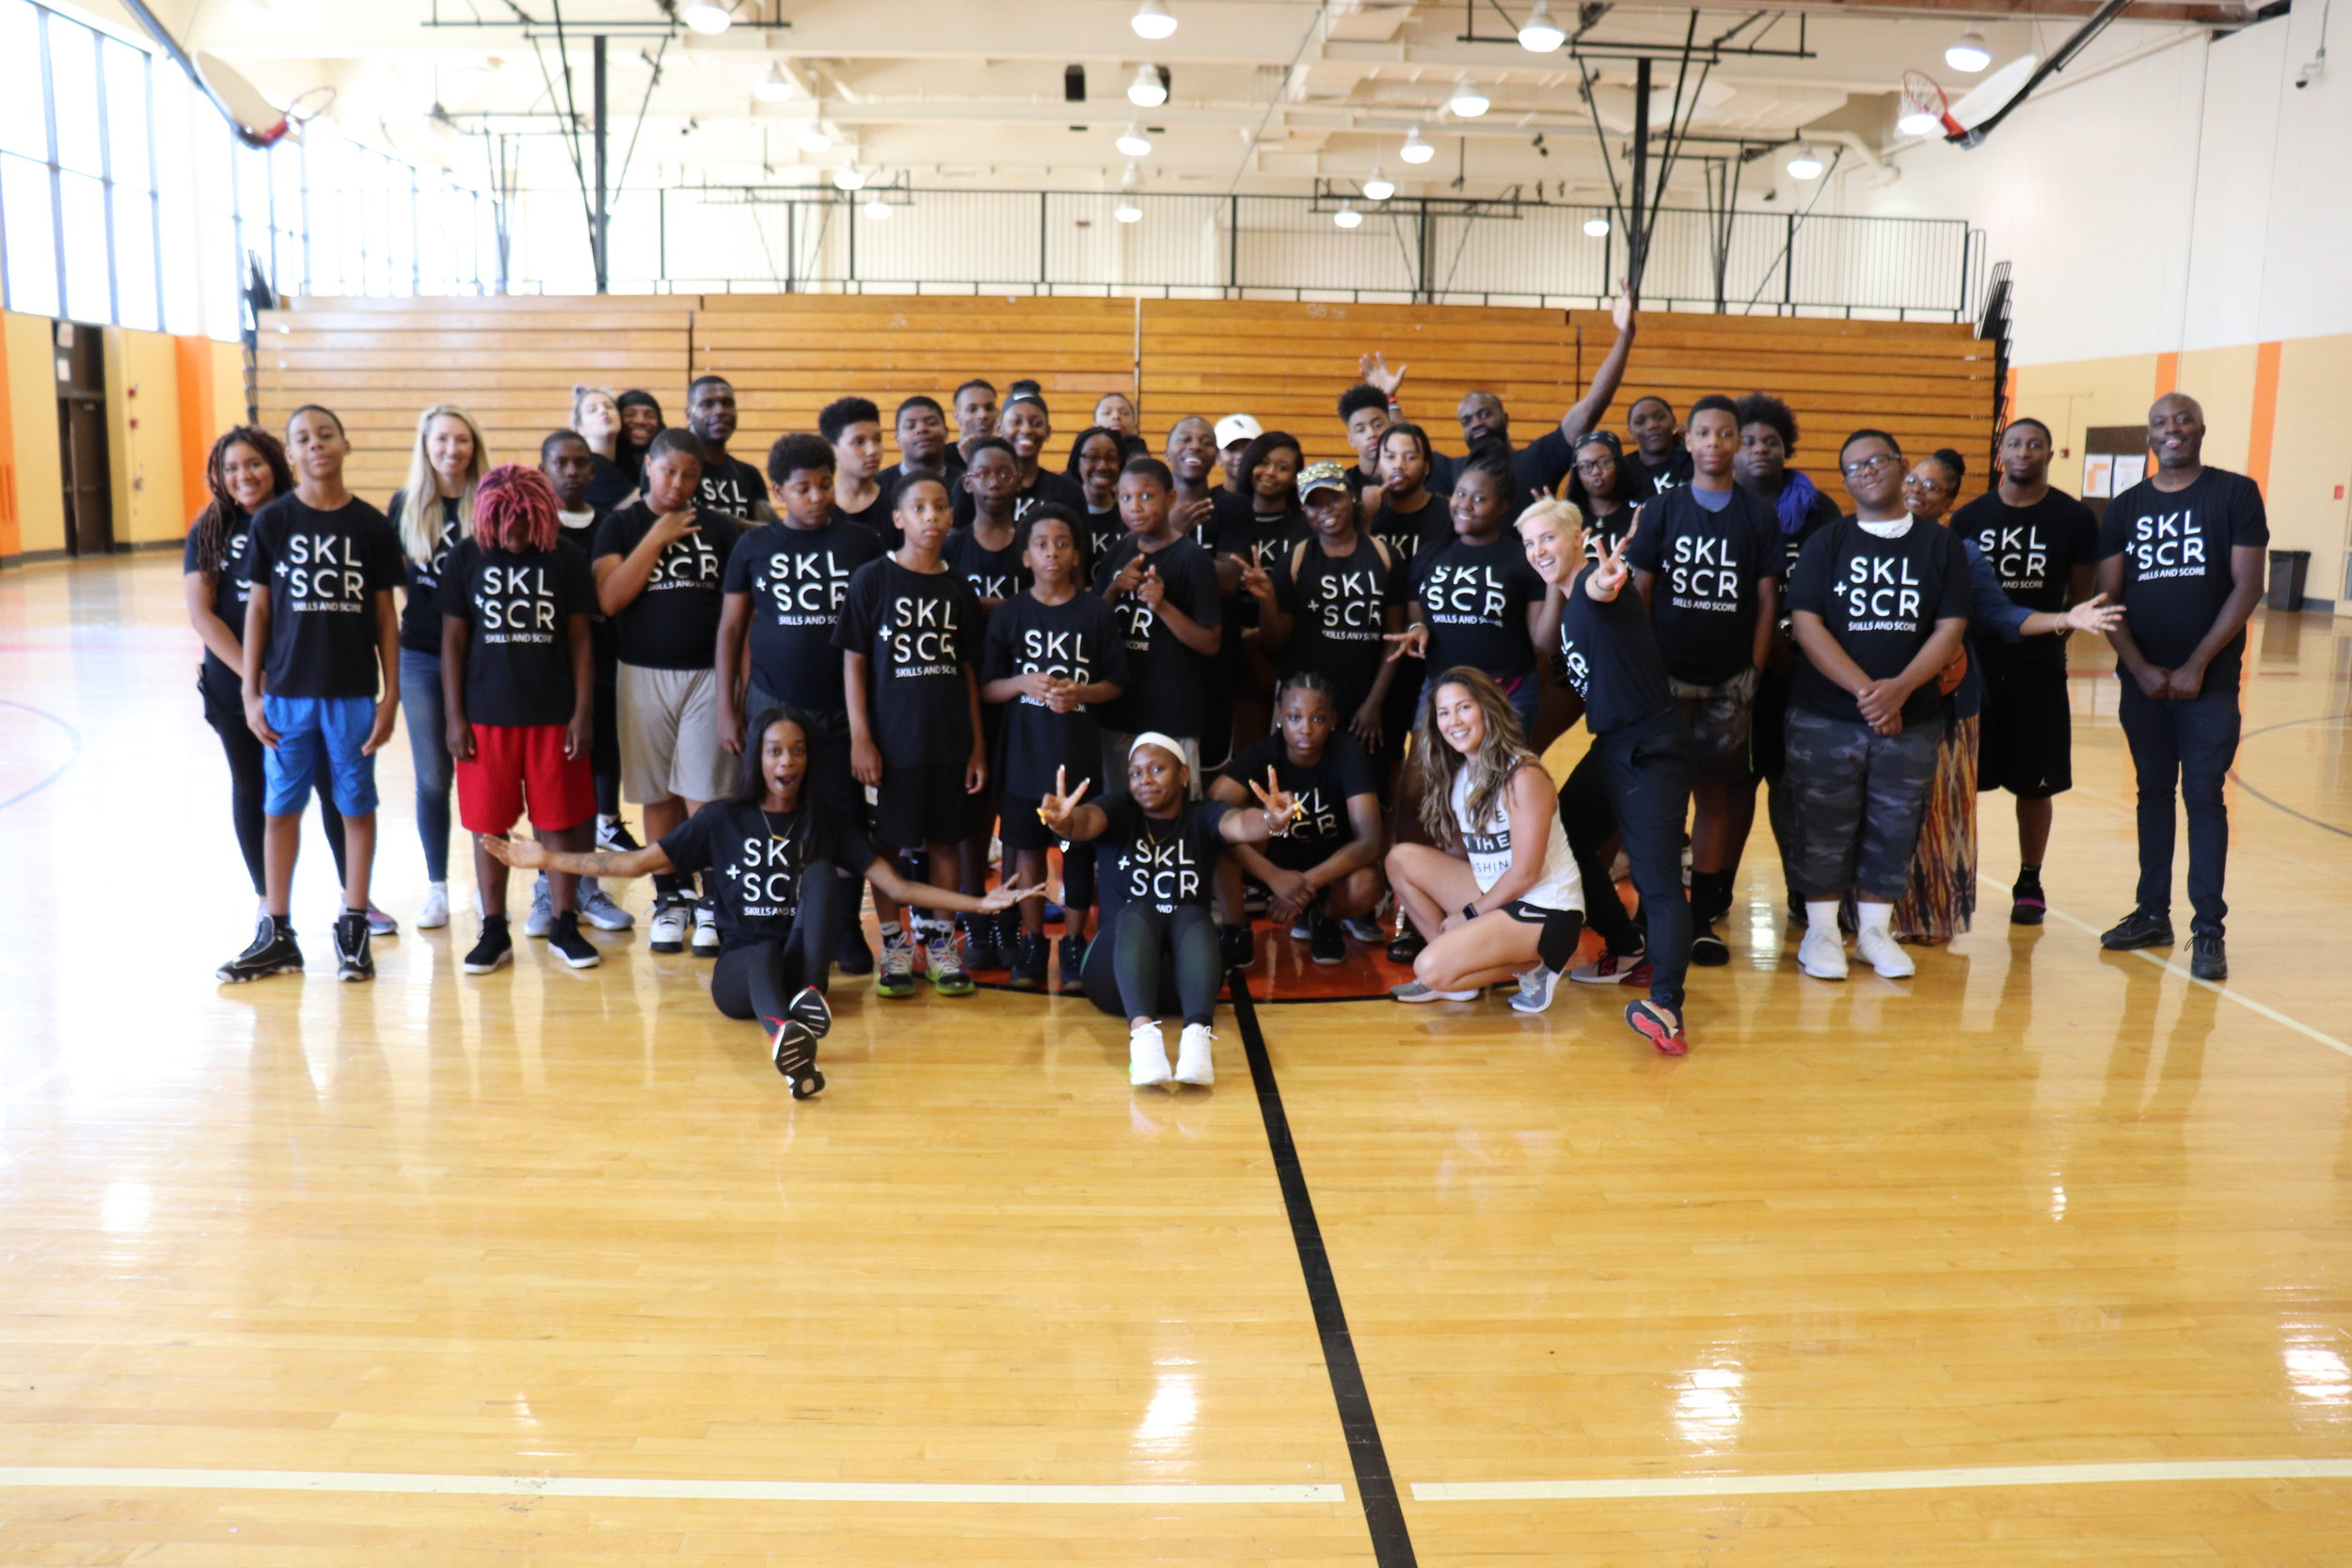 The 2019 SKL + SCR Basketball and Broadcast Camp at Percy L. Julian High School